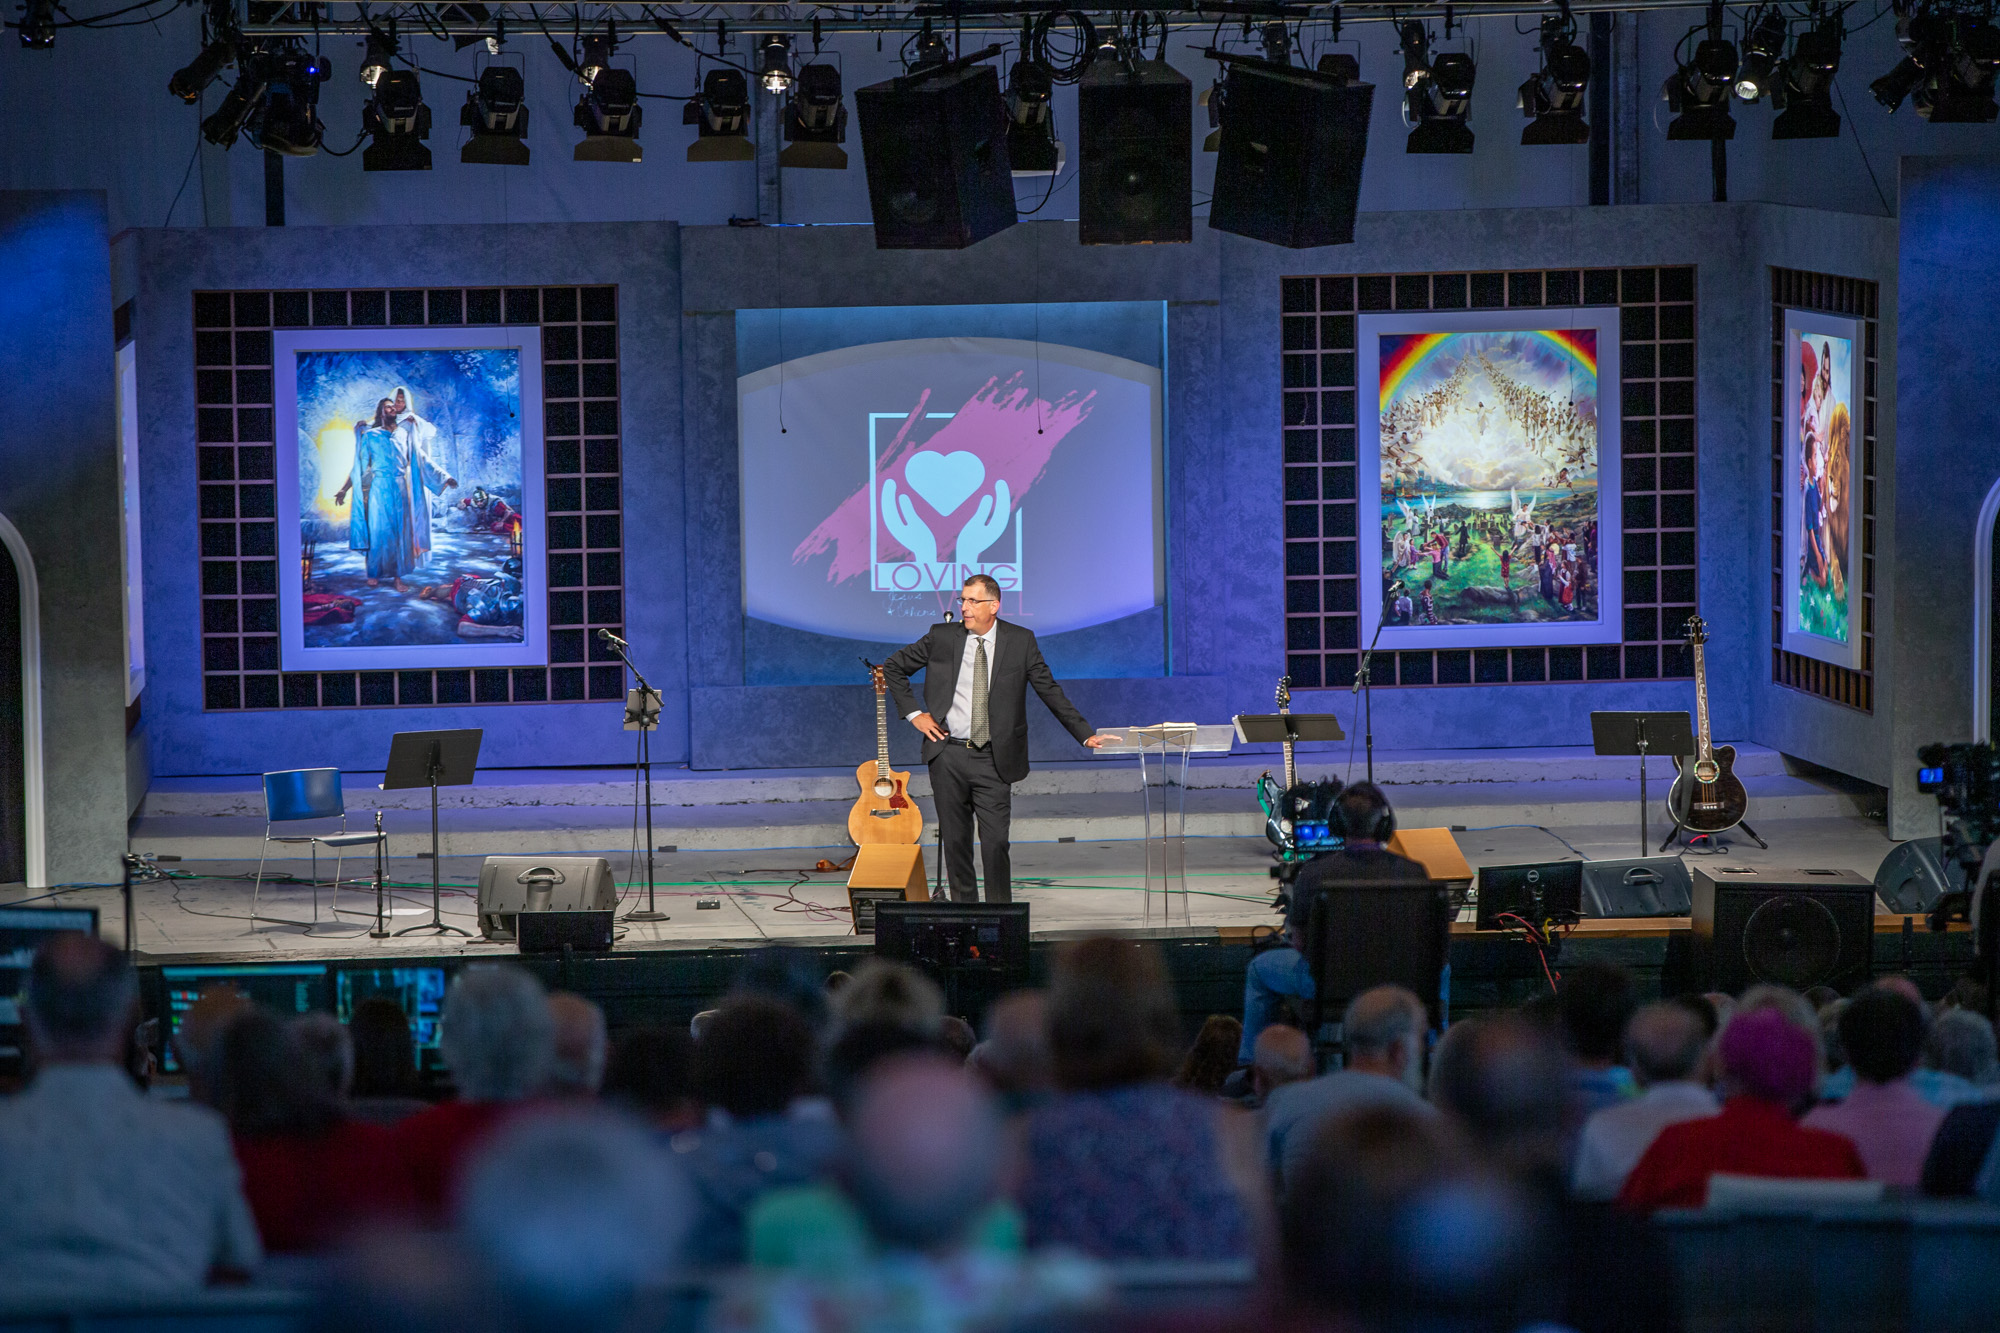 Preaching up front in big tent camp meeting